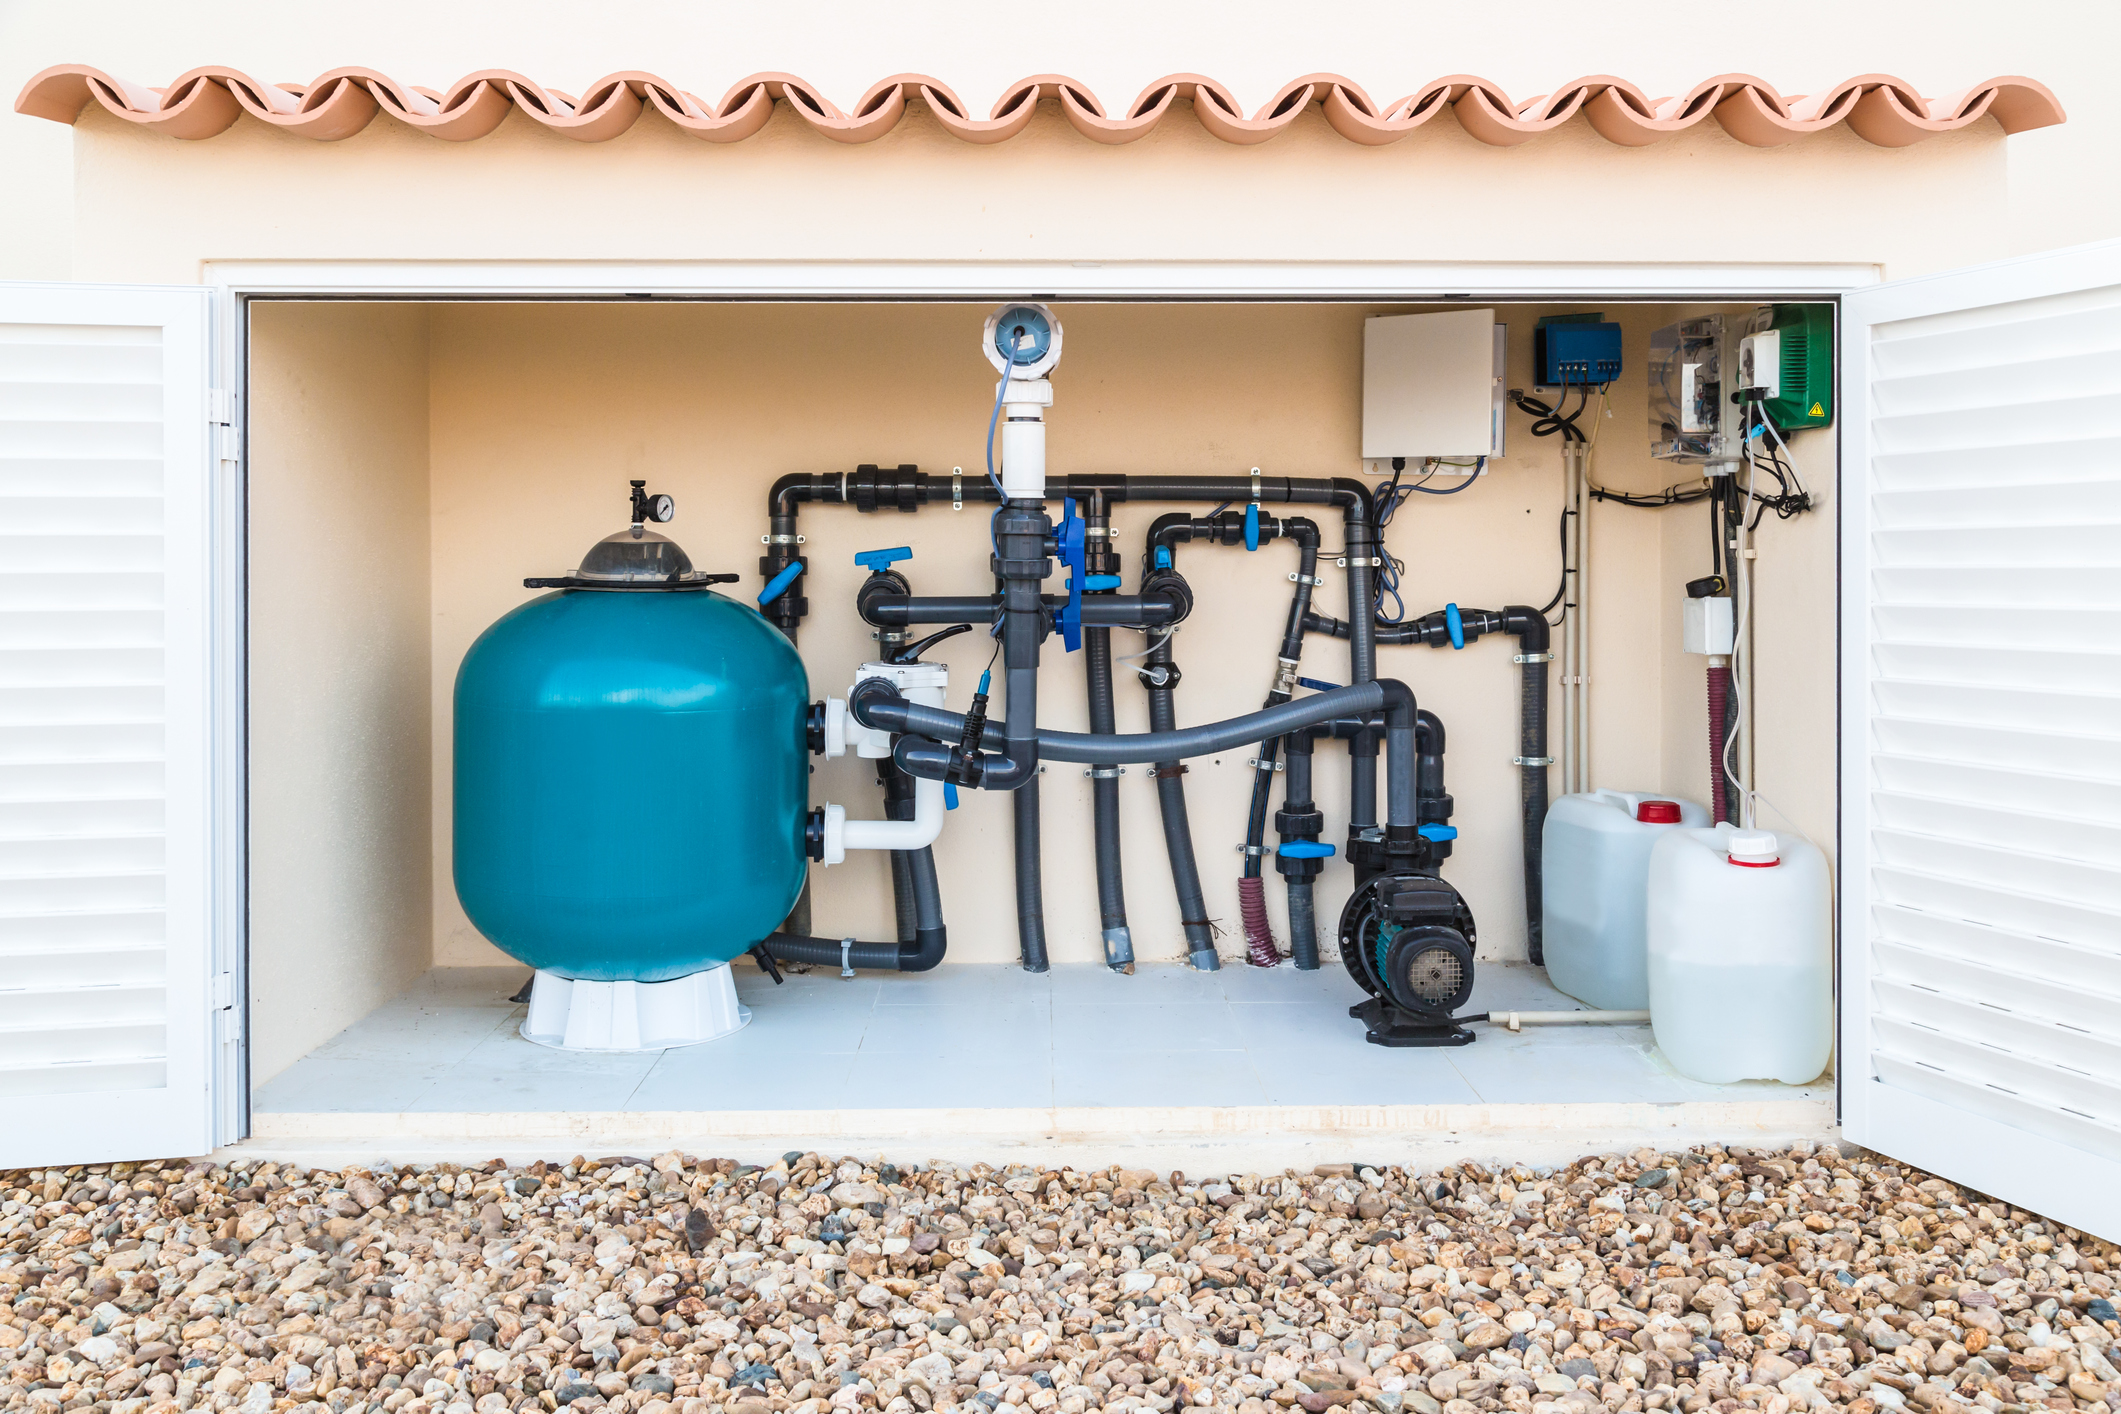 Brine, Salt water, swimming pool filter, valves and pumps in a purpose built hut